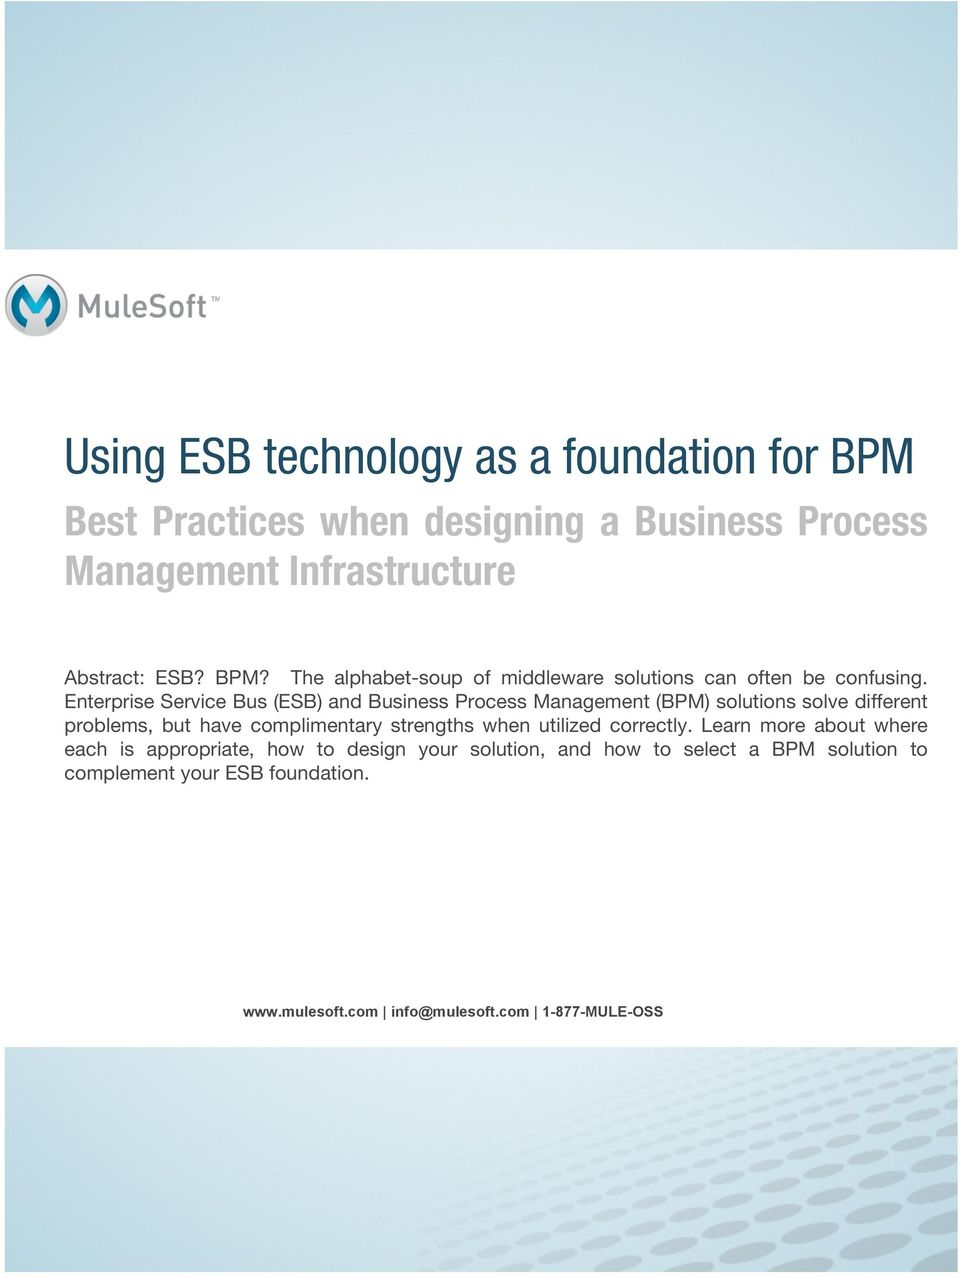 Learn more about where each is appropriate, how to design your solution, and how to select a BPM solution to complement your ESB foundation.